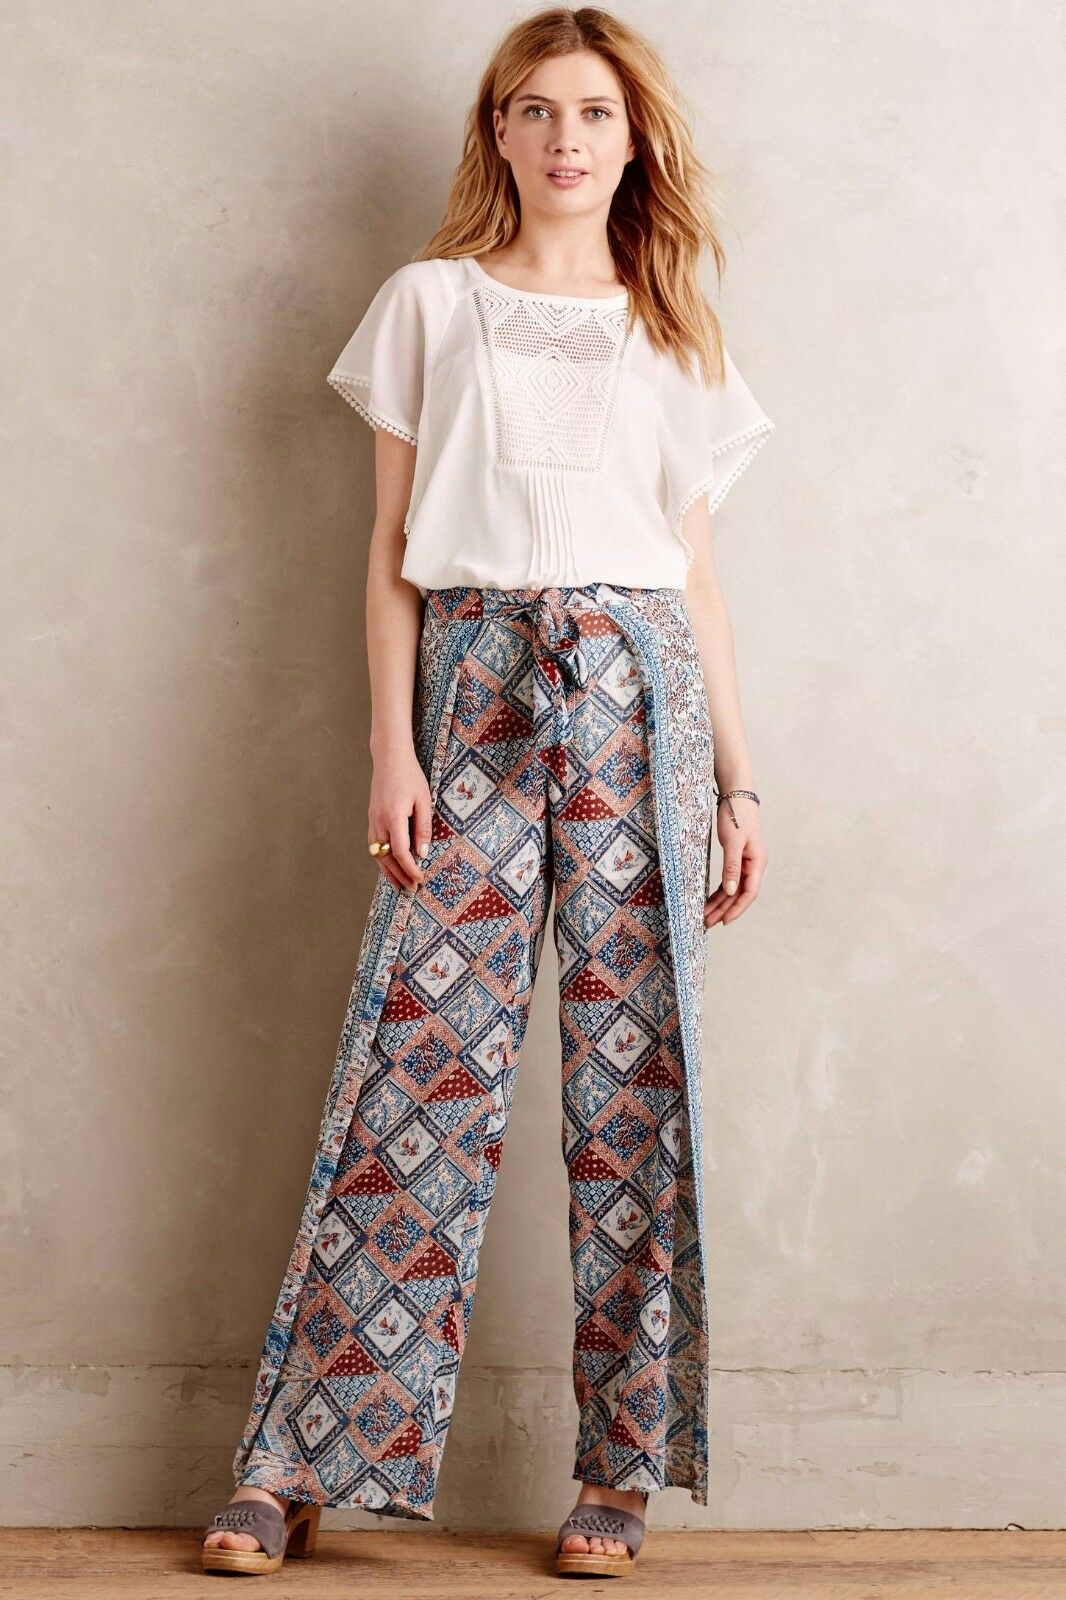 Primary image for NWT $138 Anthropologie Eleveness Seaflower Wide Leg Pants Size 2 T  TALL